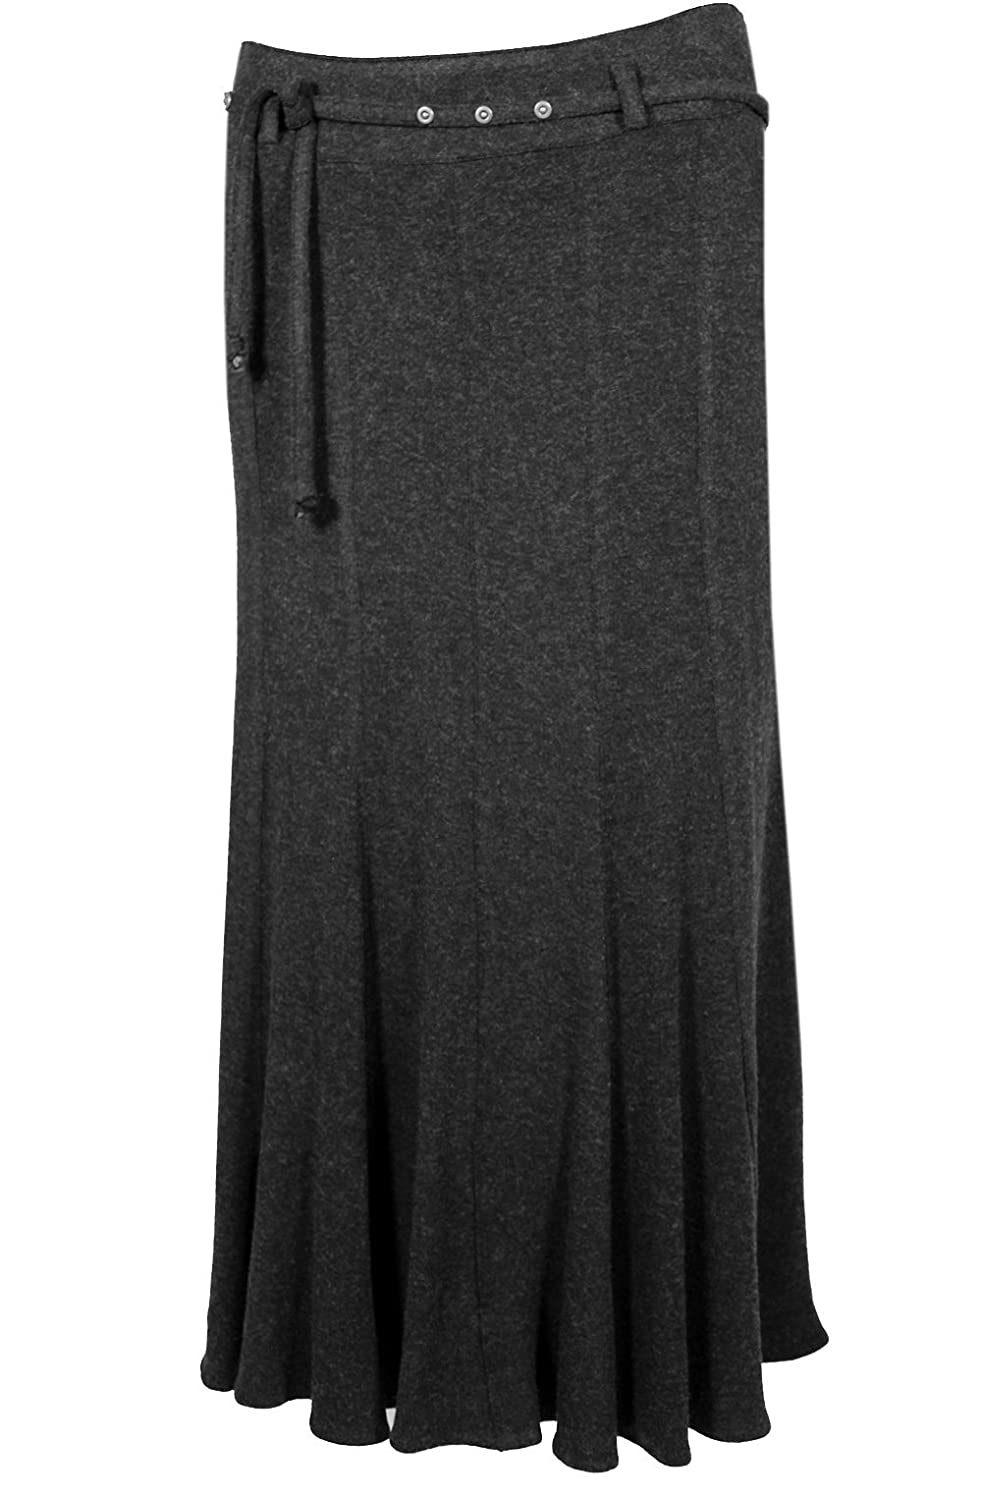 Steilmann Dark Grey Swing Skirt